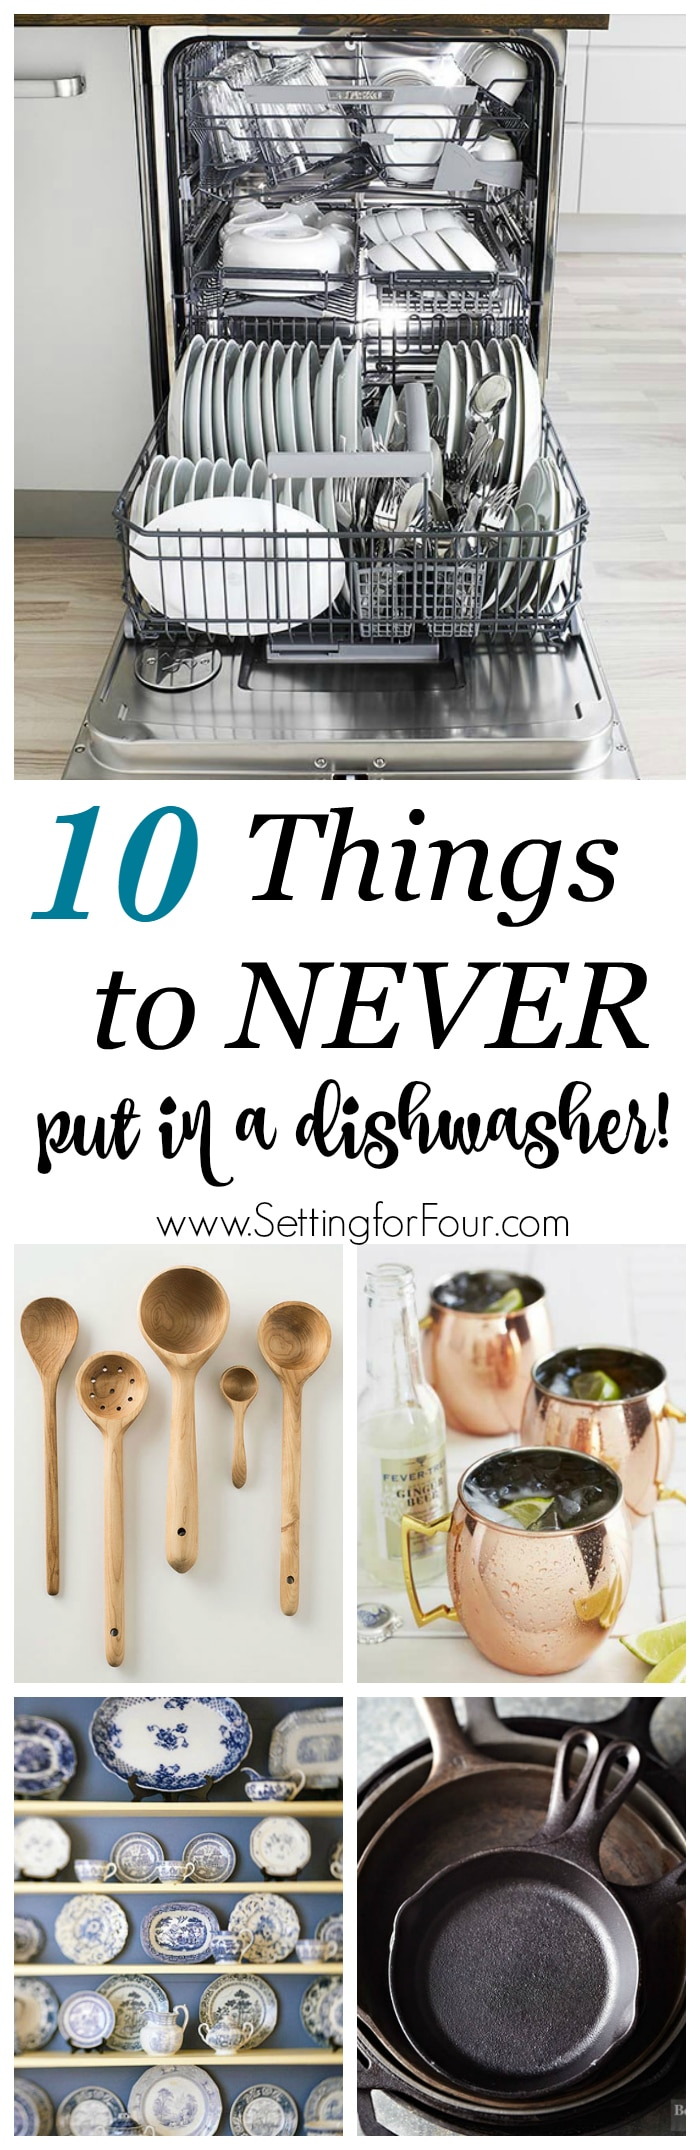 10-things-to-never-put-in-a-dishwasher